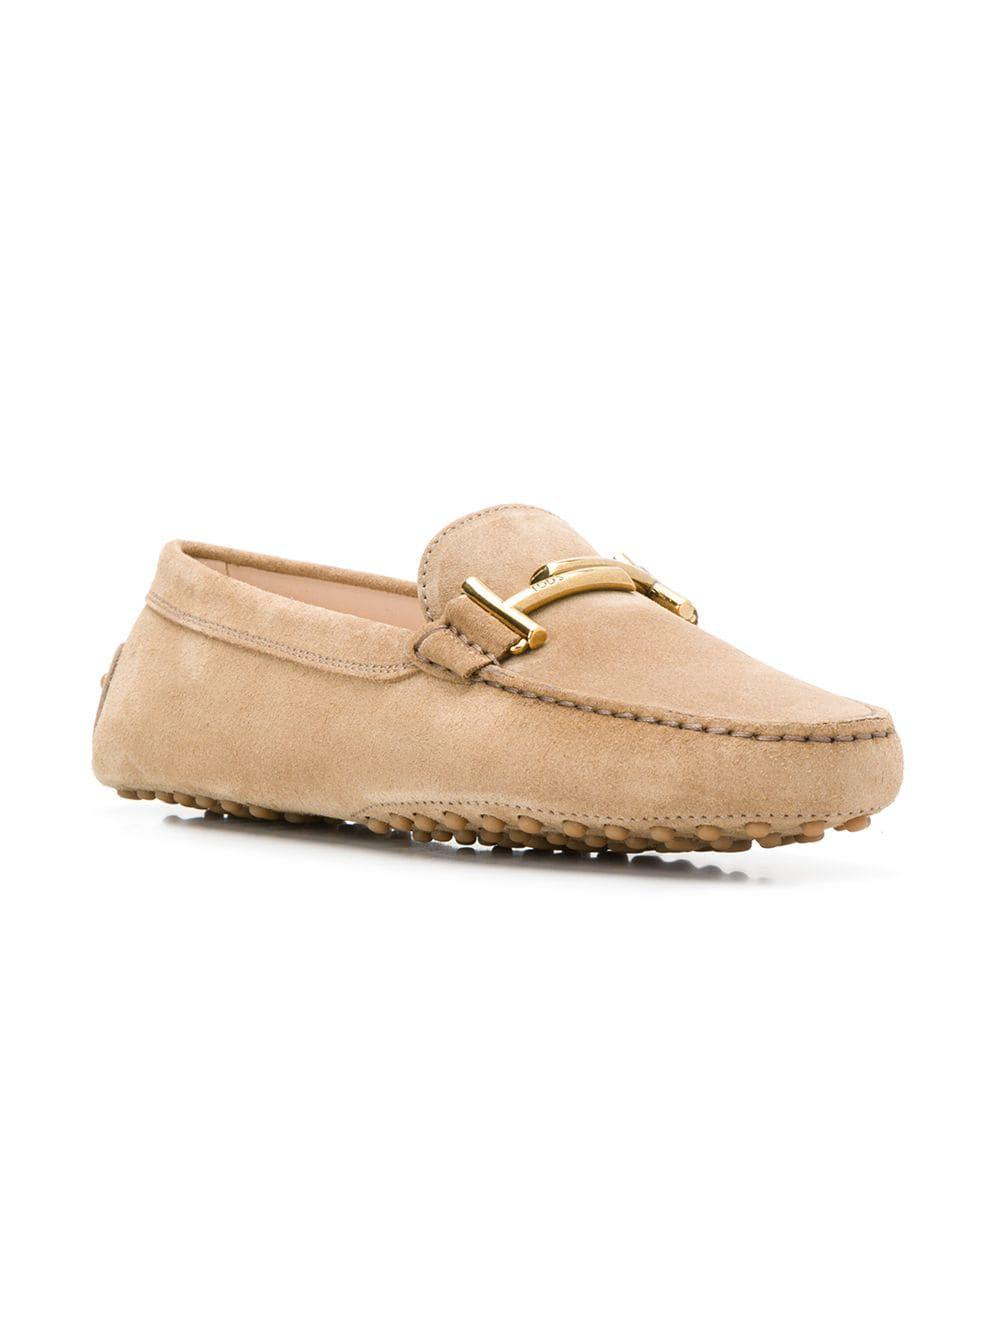 854897be495 Lyst - Tod s Gommino Leather Driving Shoes in Natural - Save  10.714285714285708%